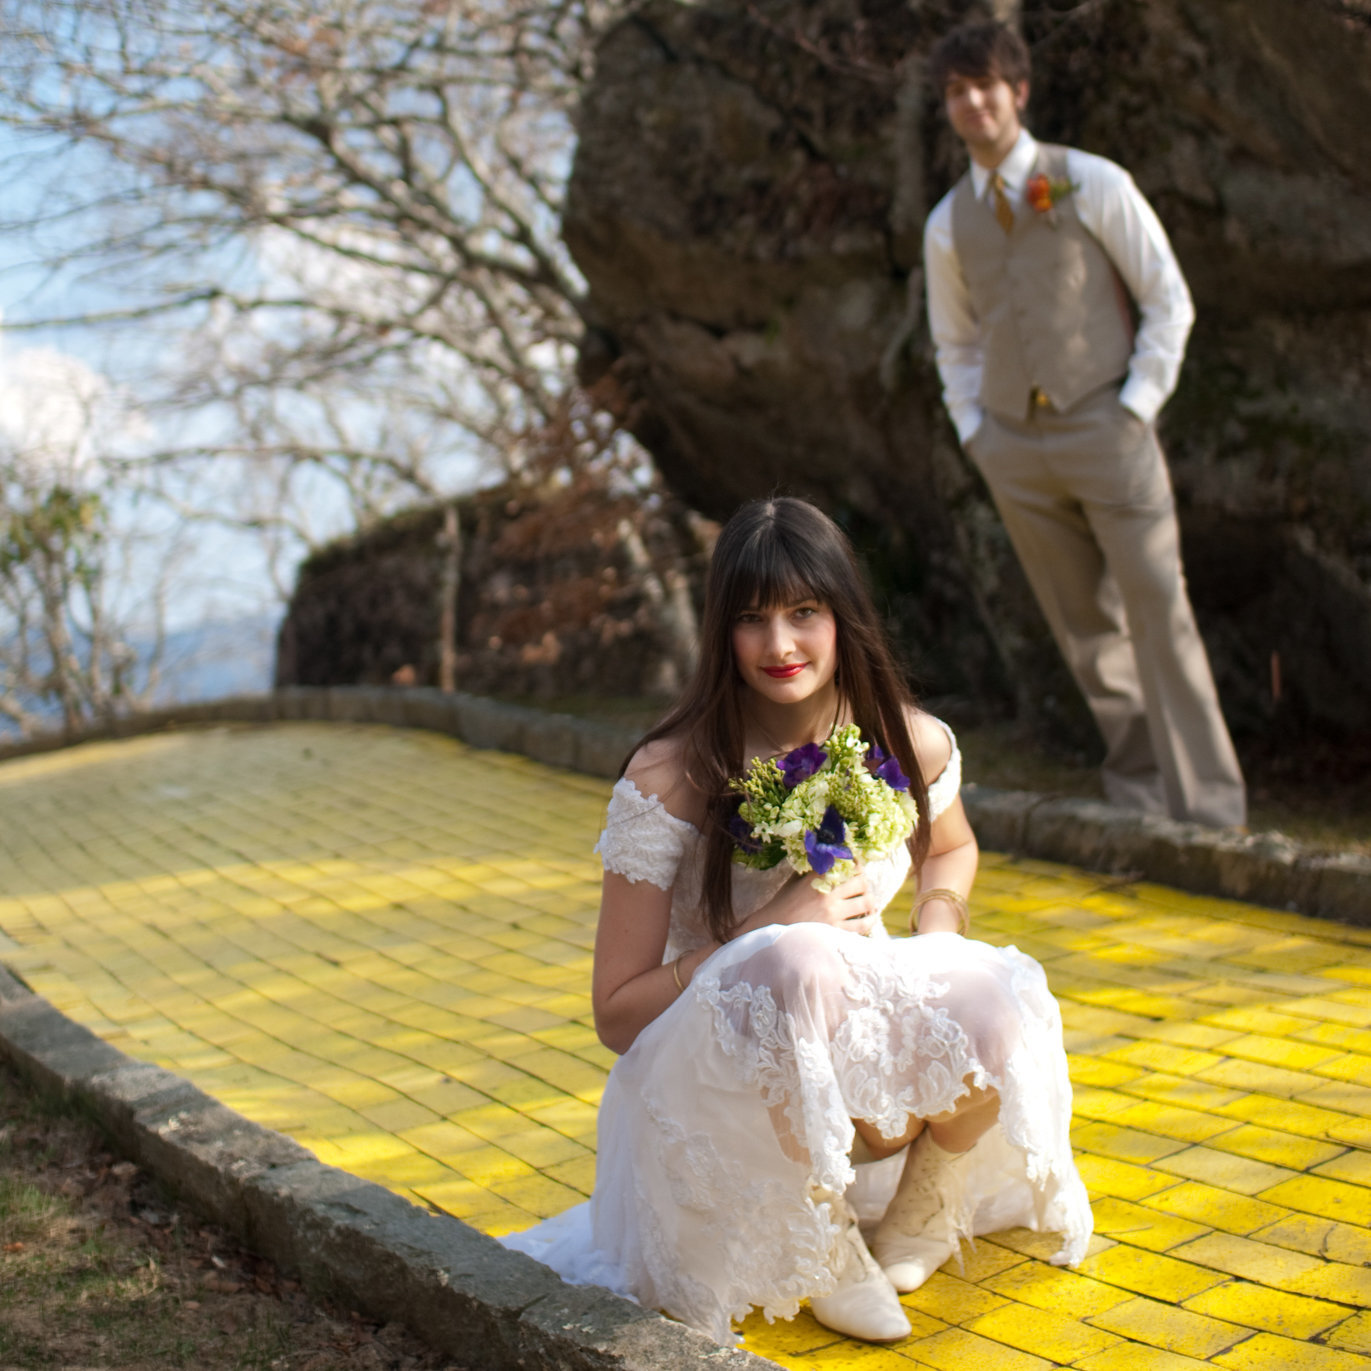 a pretty bride kneels down on the yellow brick road in front of a groom at land of oz